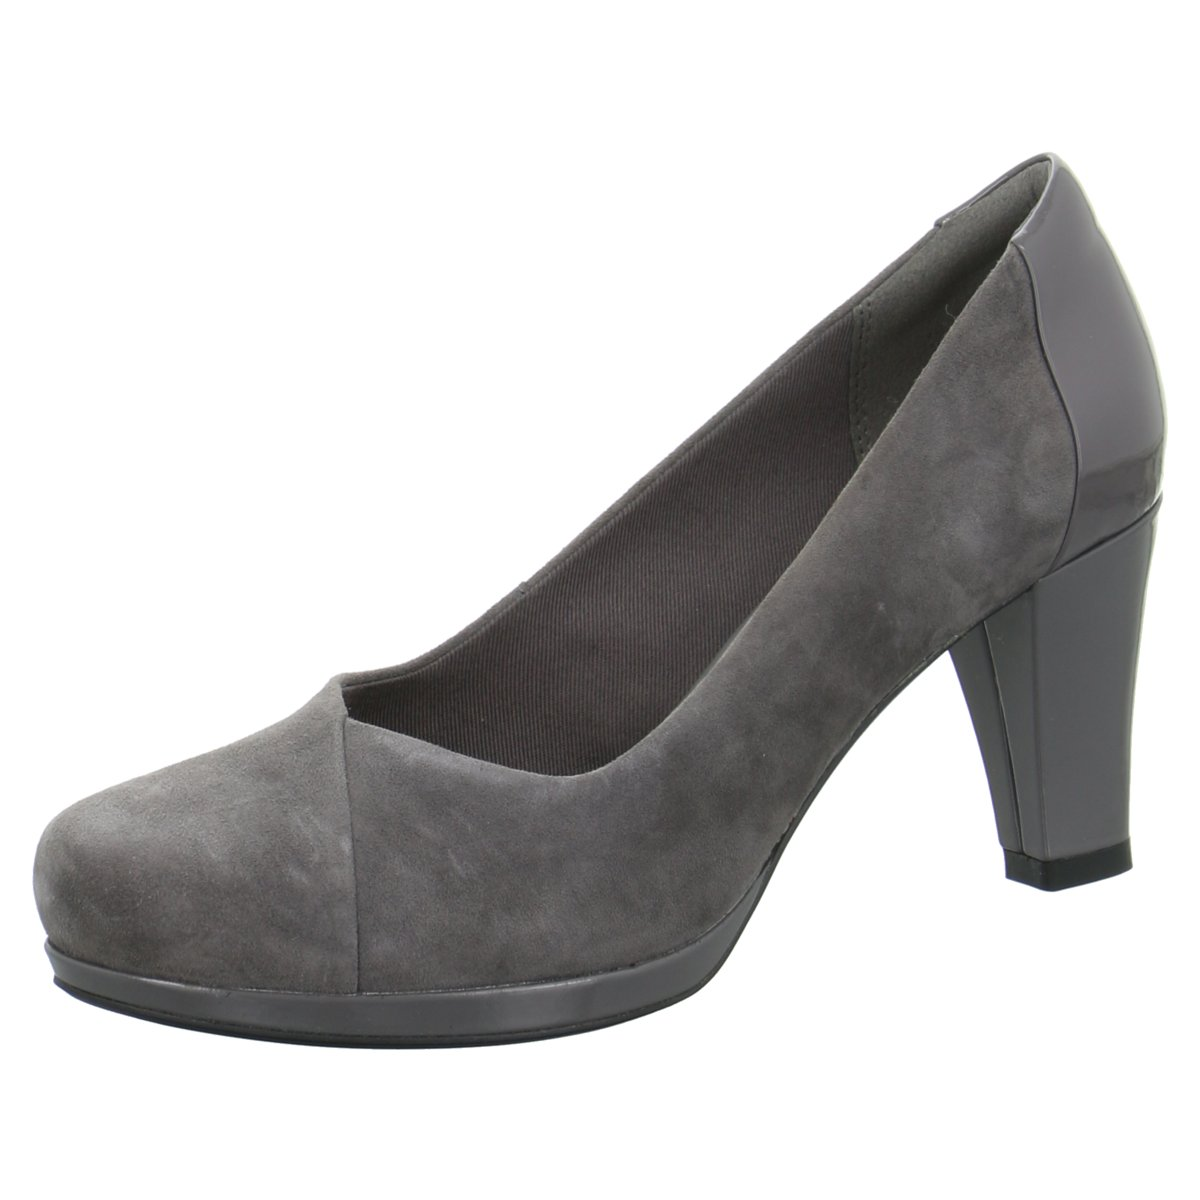 Clarks Damen Pumps damen 261288204 grau 335320